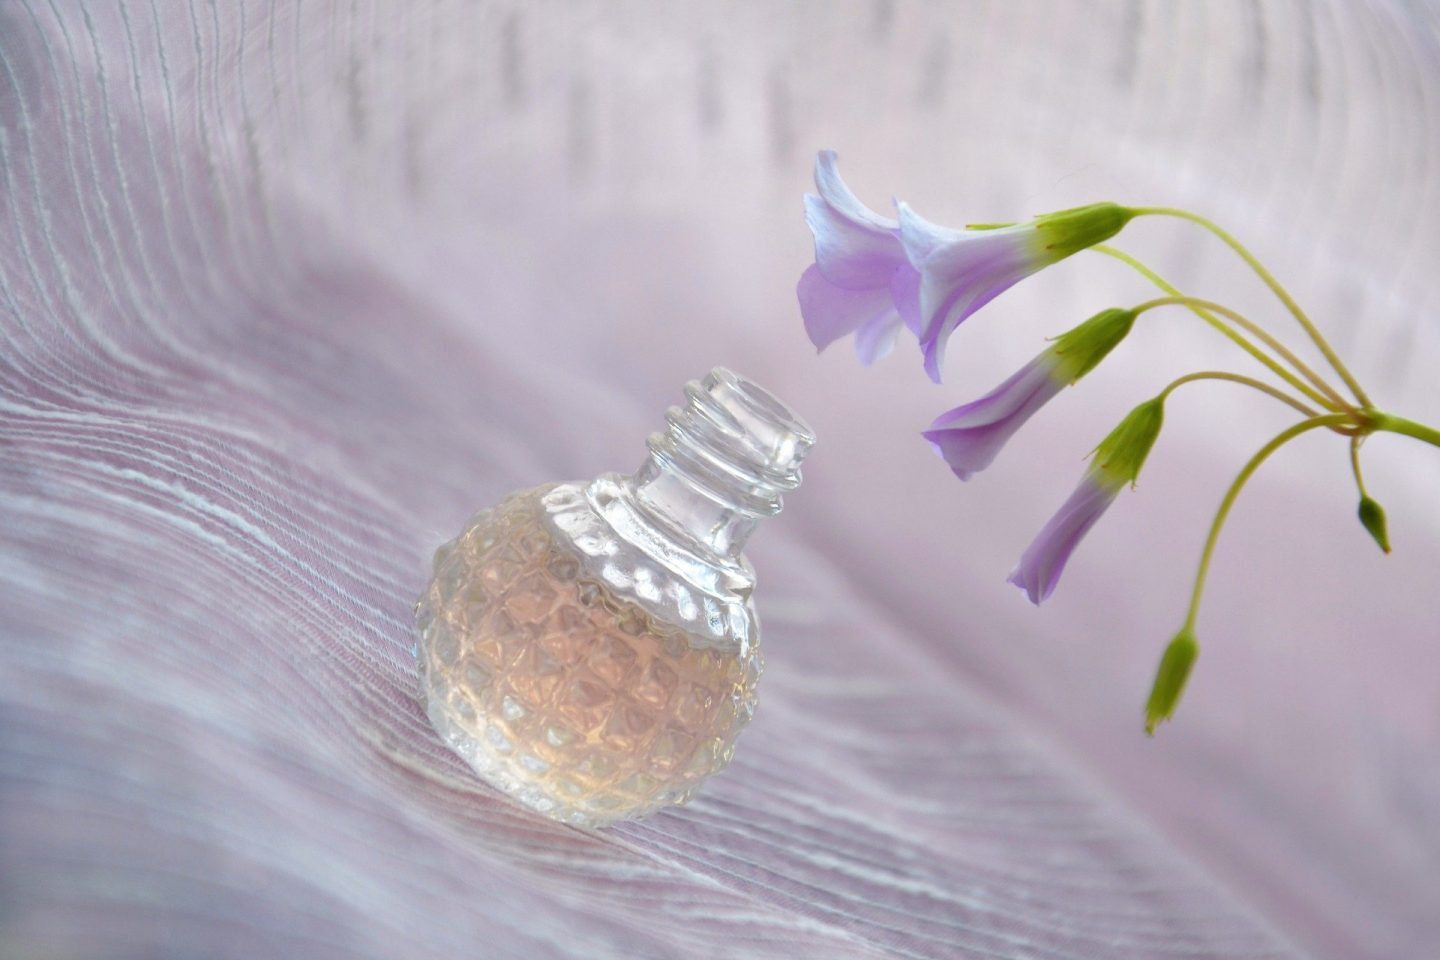 A bottle of perfume next to a flower